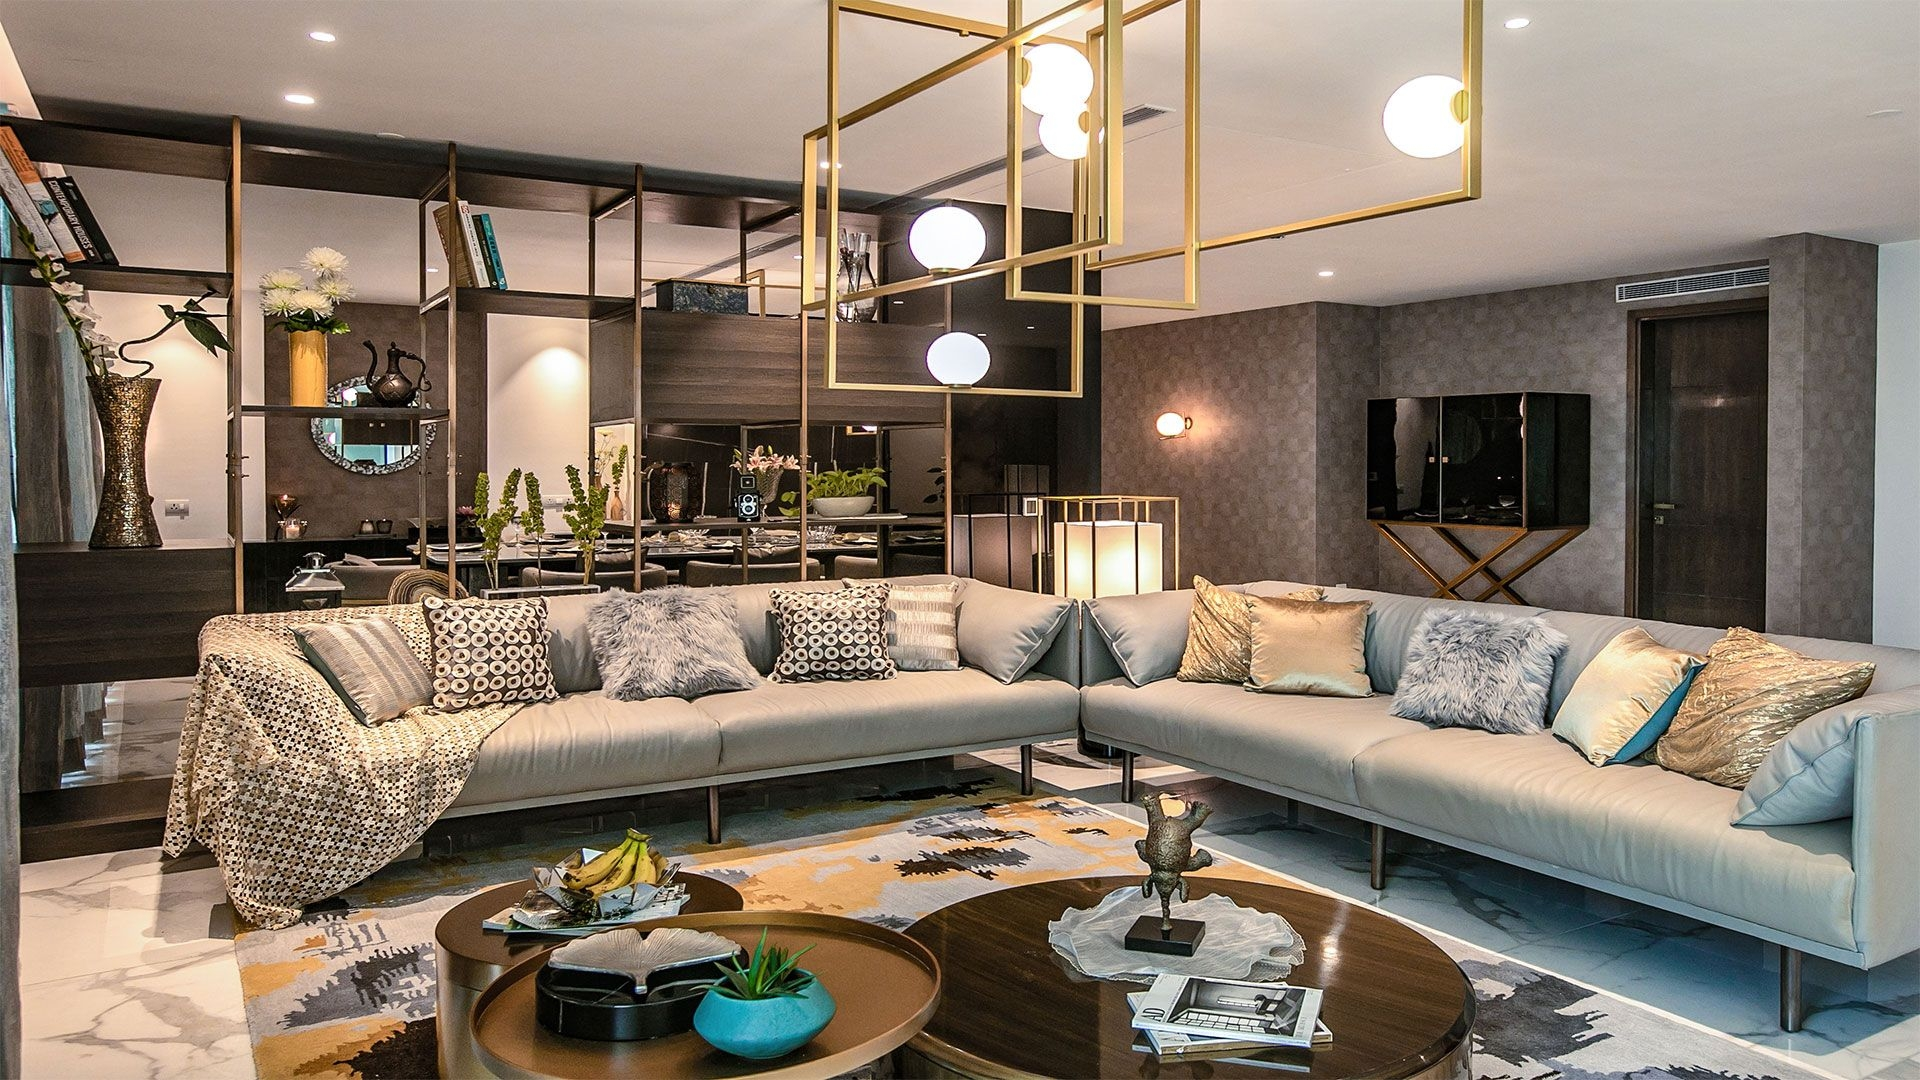 Gurgaon This Penthouse Follows The Principles Of Clean Understated Luxury